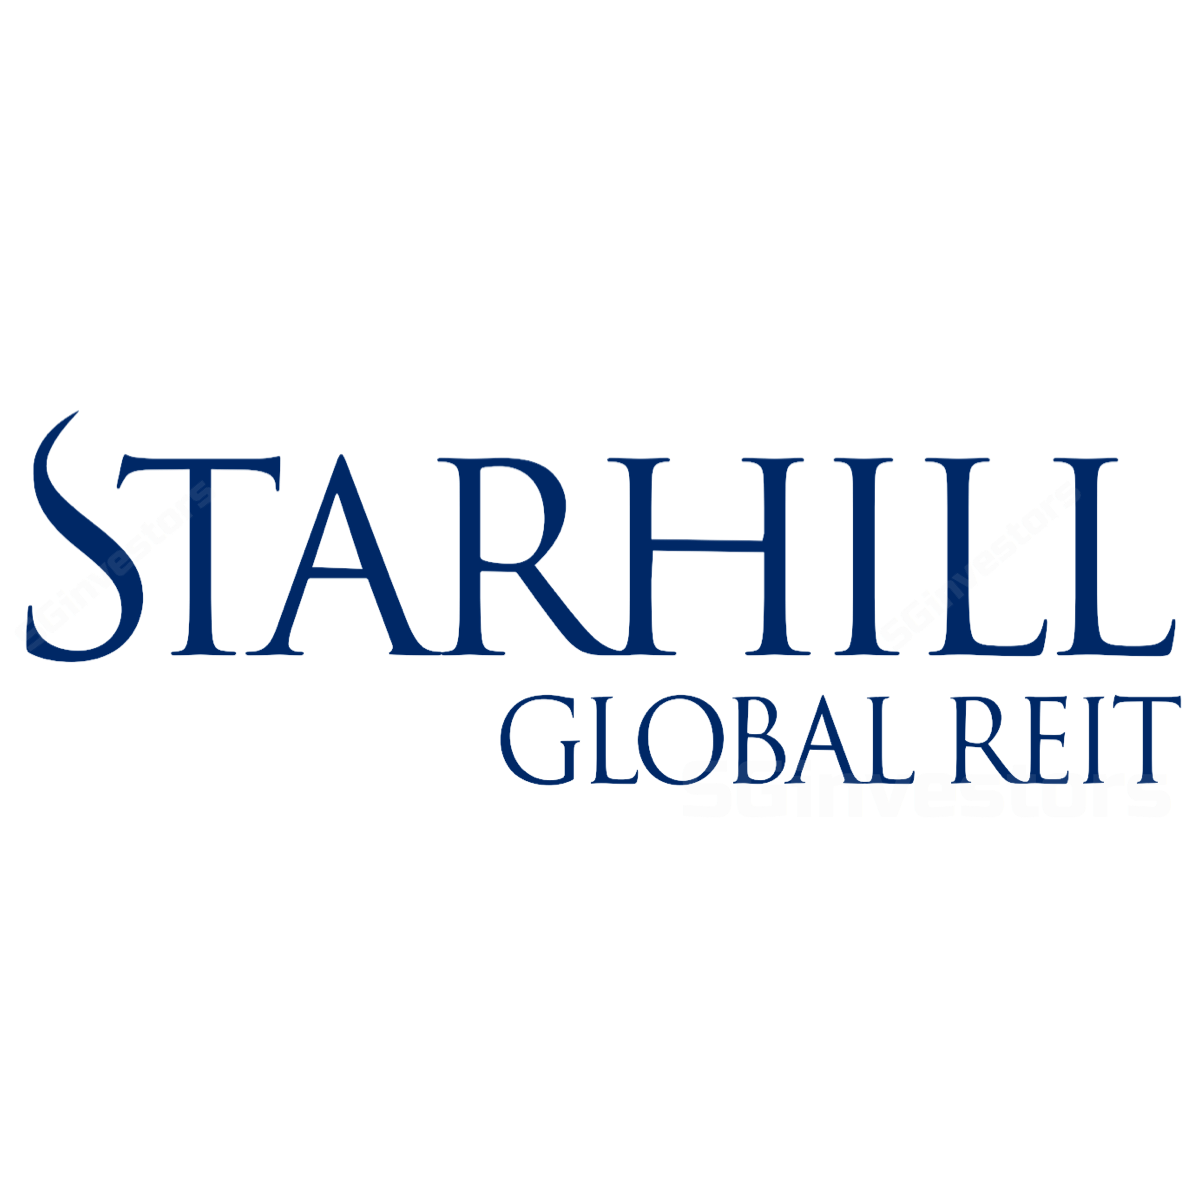 Starhill Global REIT - RHB Invest 2017-04-28: DPU Declines 6.3%YoY Amid Soft Market Conditions